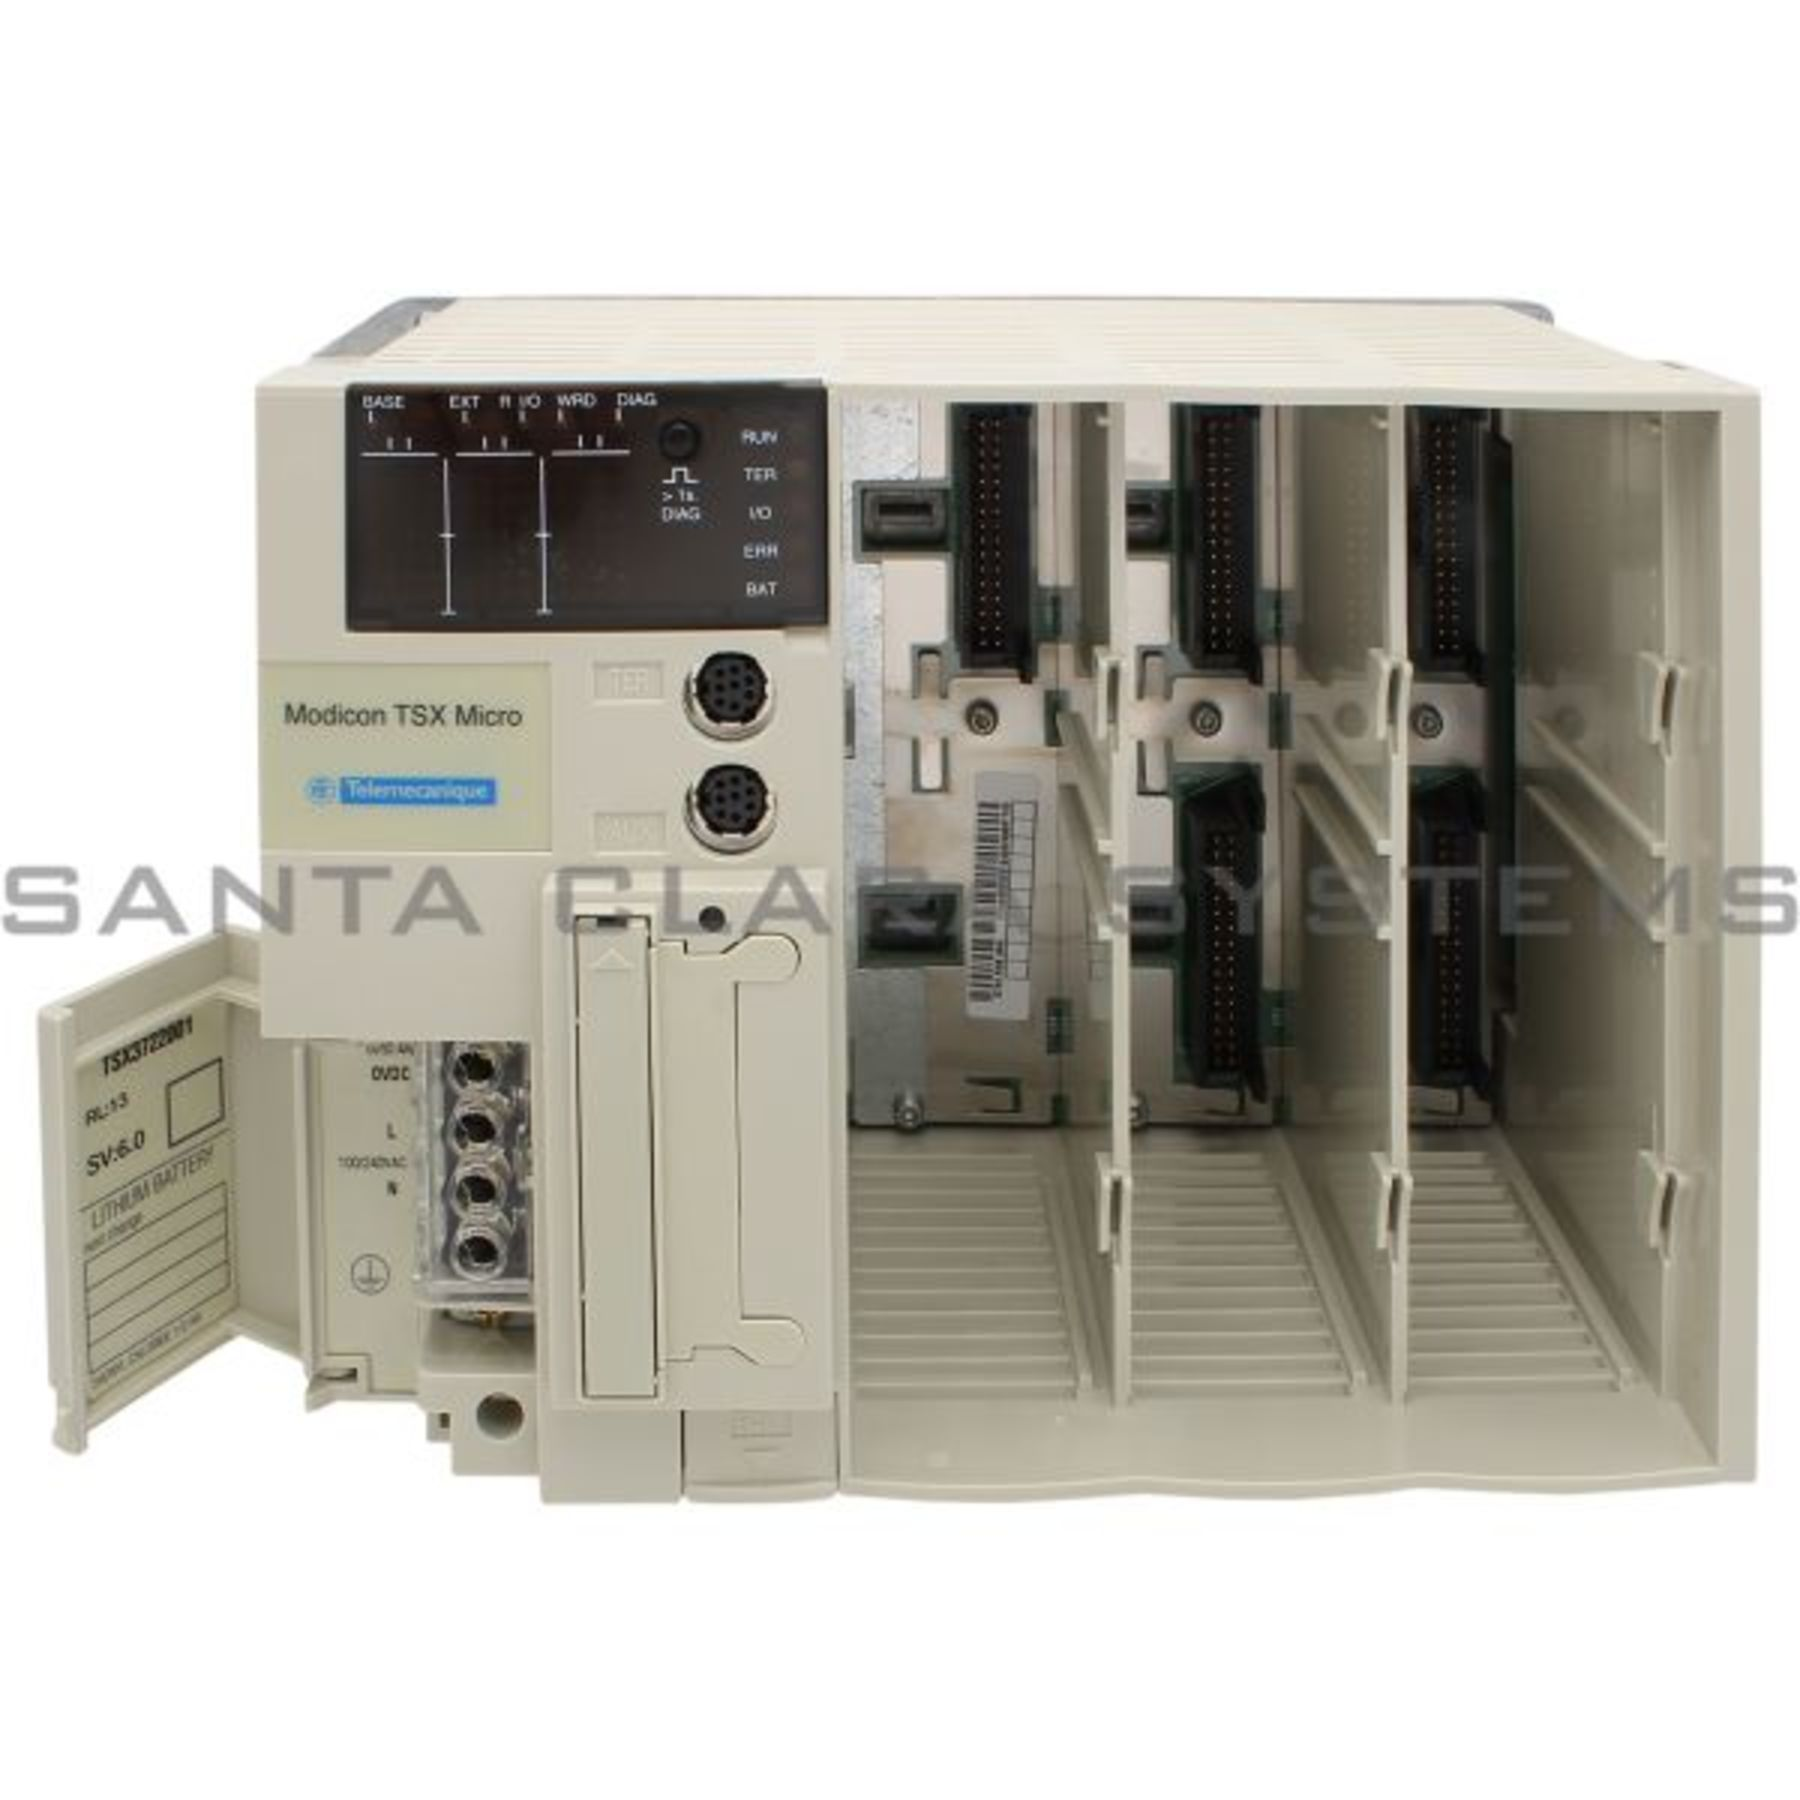 TSX3722001 TSX Micro 37 21/22 PLC configurations In stock and ready